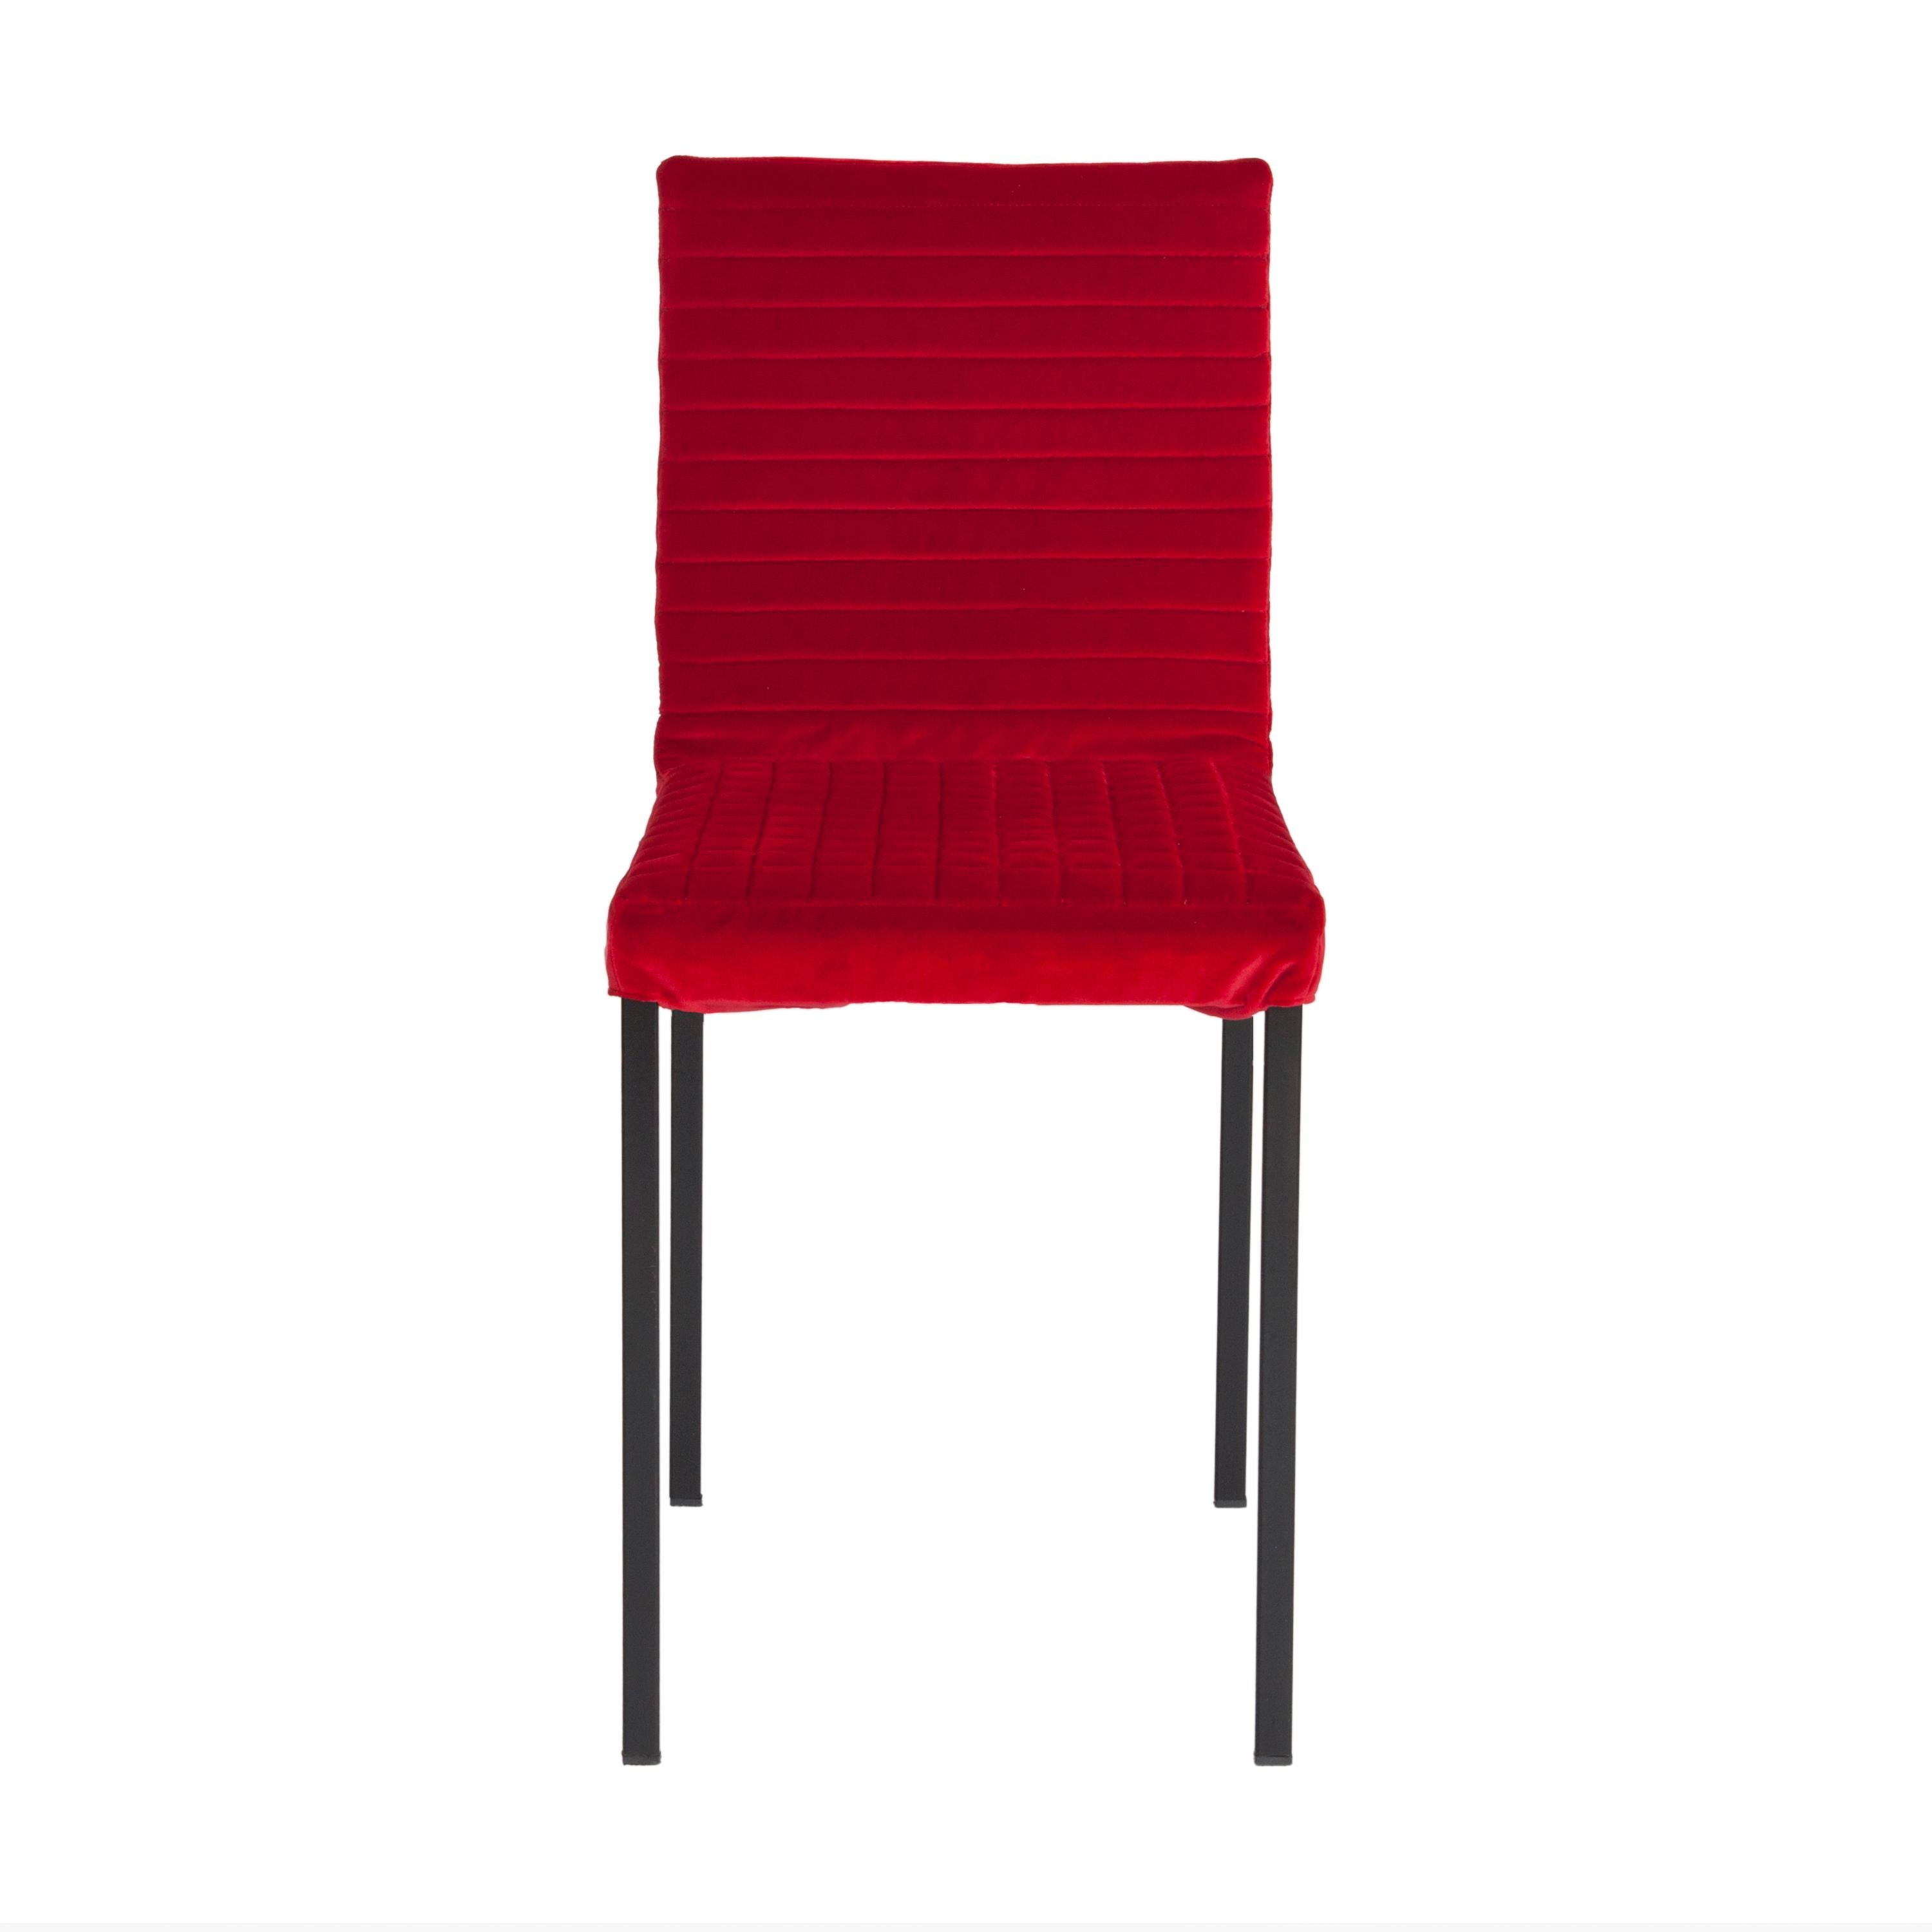 Contemporary Tanit Soft Chair with Red Velvet Cover